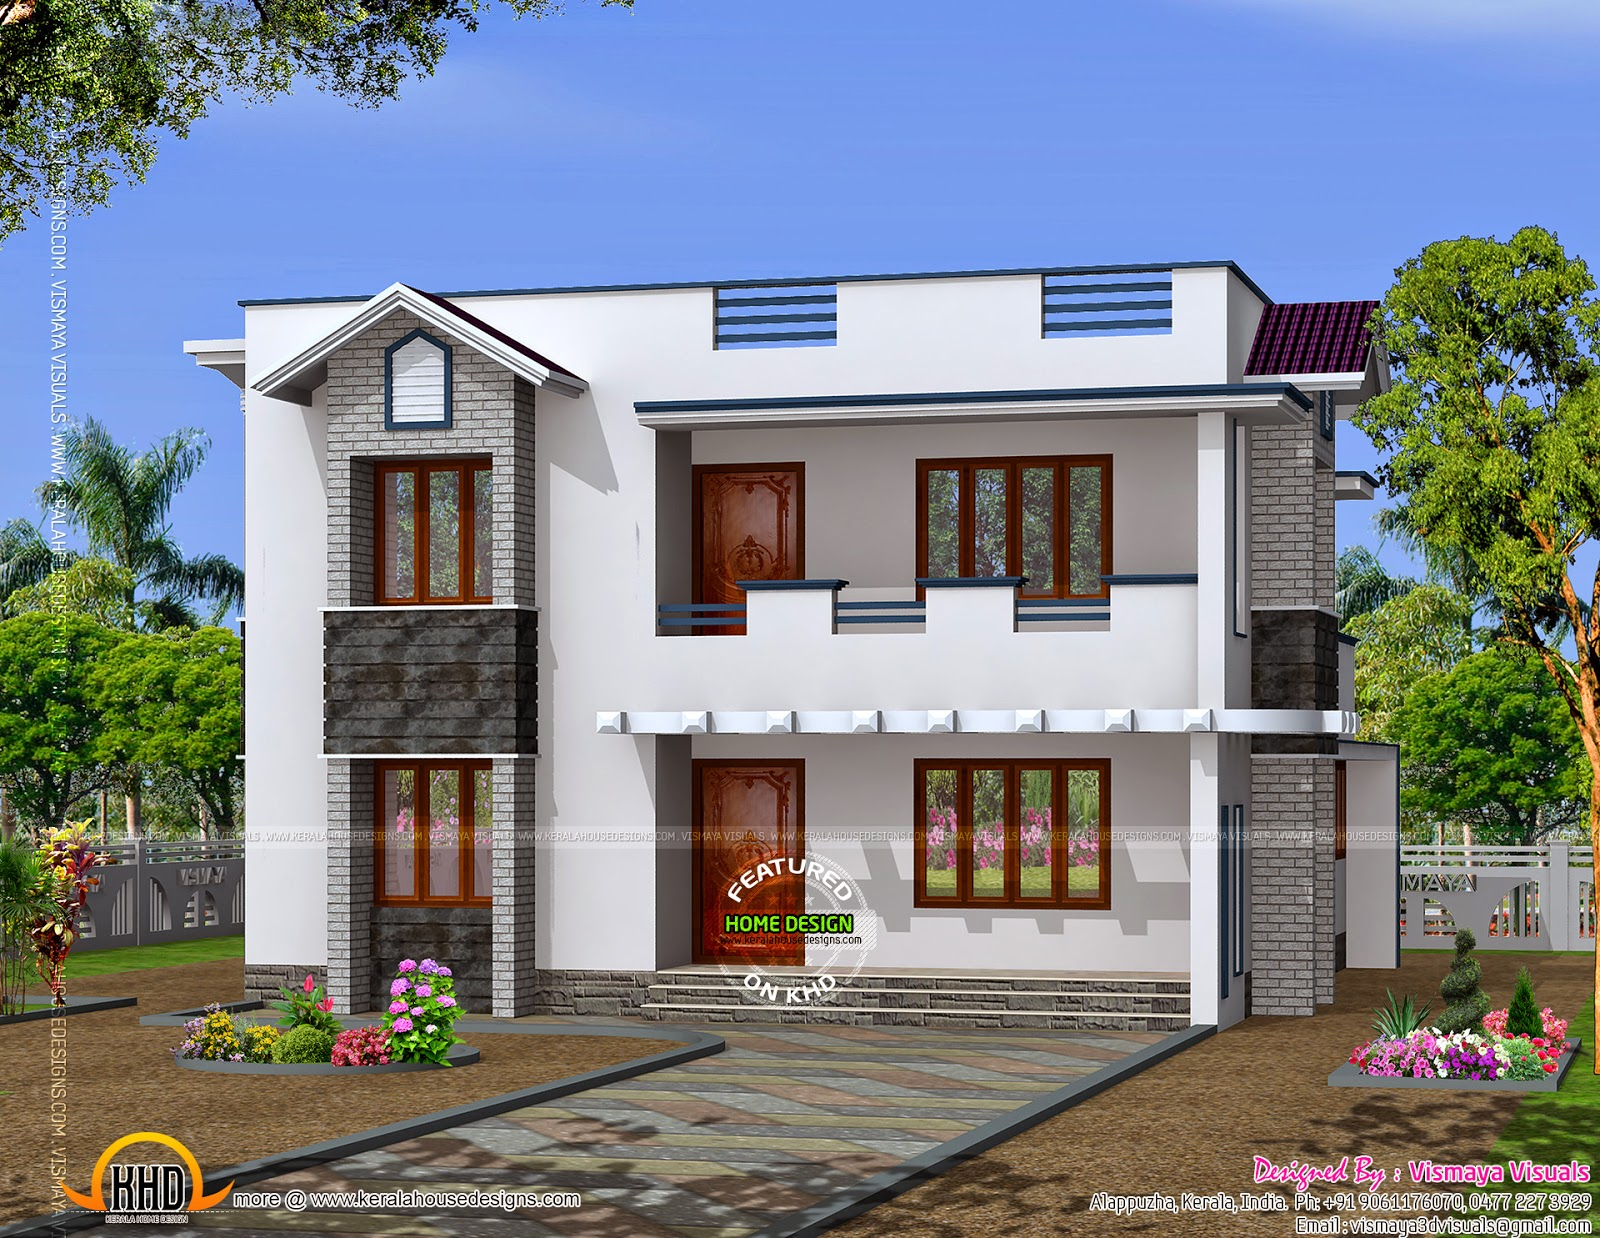 Simple design home kerala home design and floor plans for Simple house design